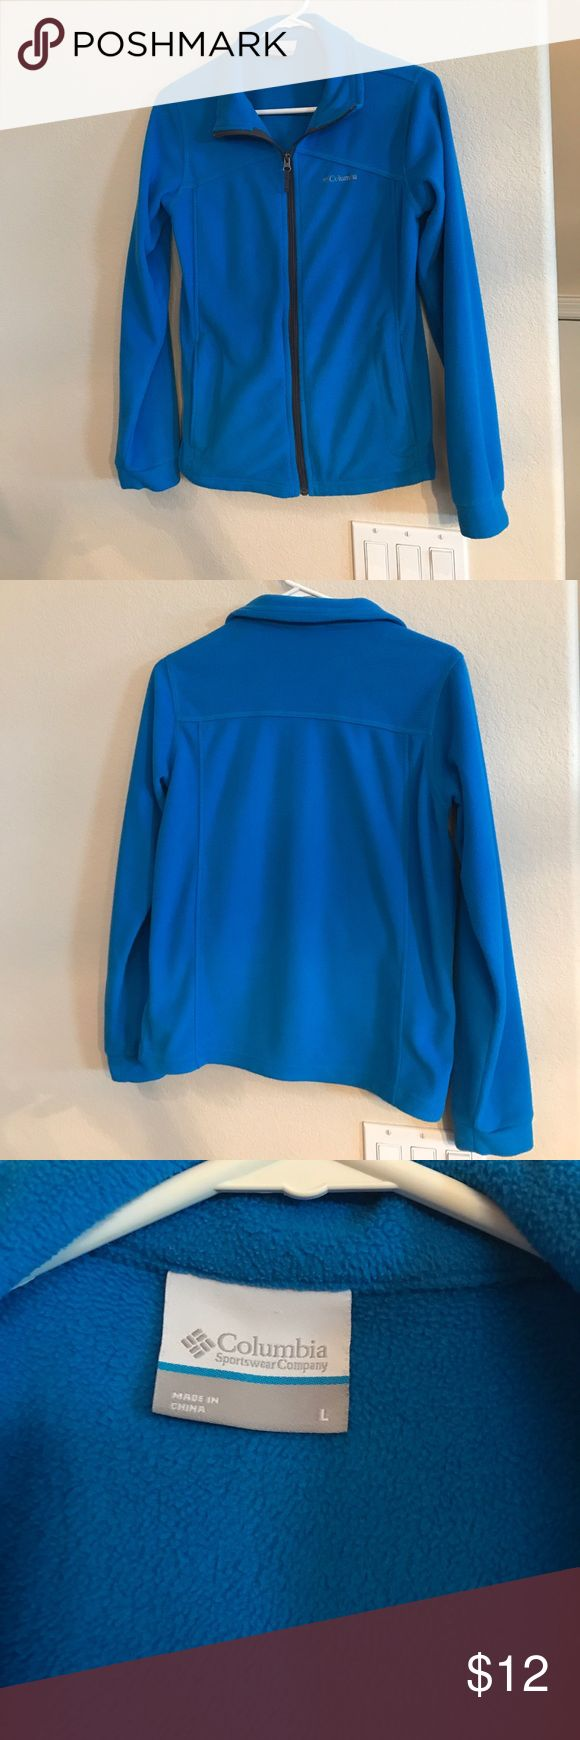 Kids' Columbia Jacket This Columbia jacket is in really great condition with no pilling or any stains or signs of wear. This is a child's size large so would probably fit a women's small. Columbia Jackets & Coats